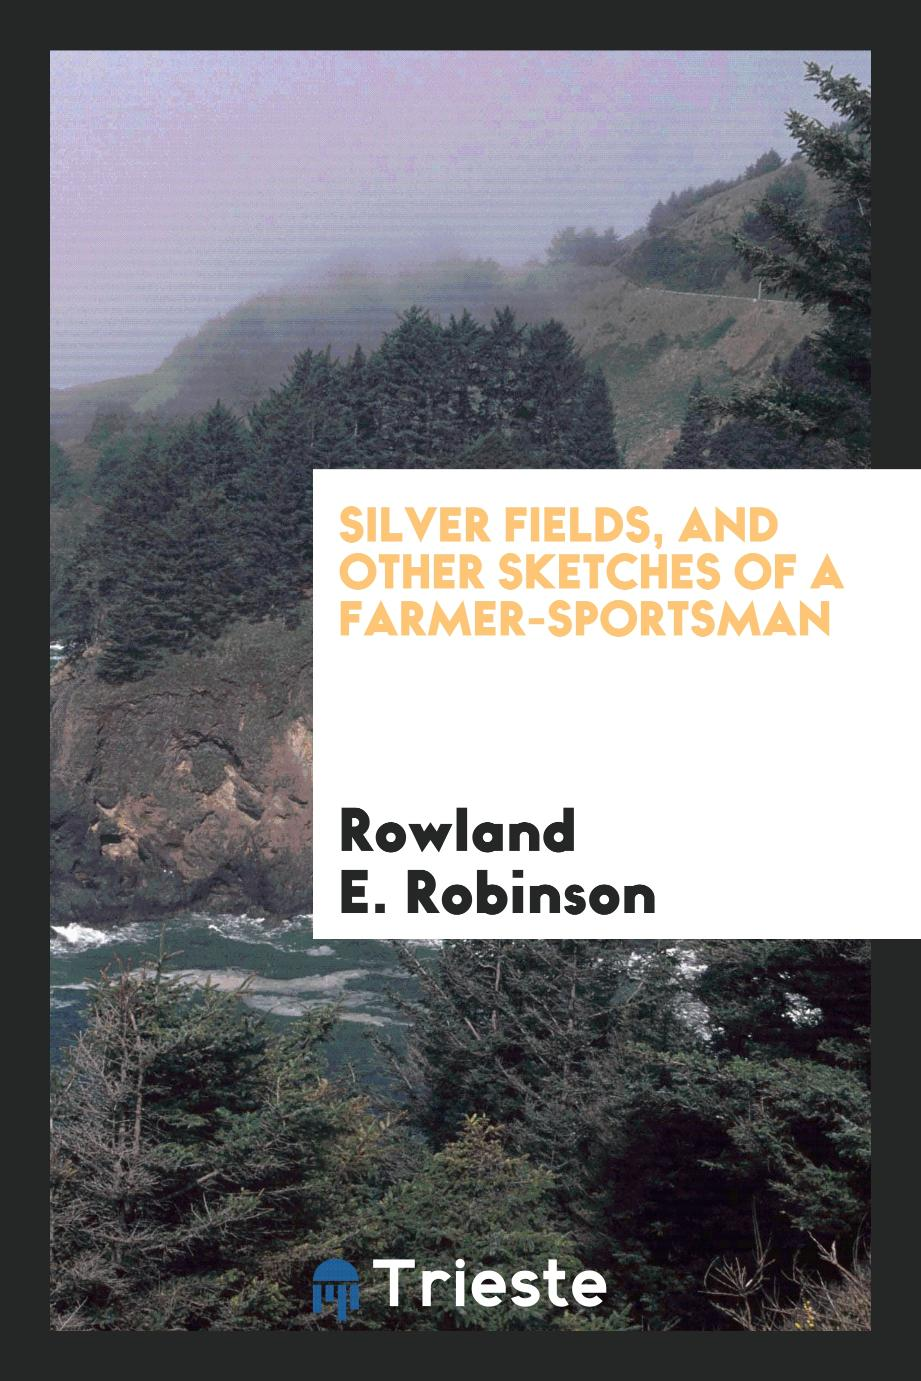 Silver fields, and other sketches of a farmer-sportsman